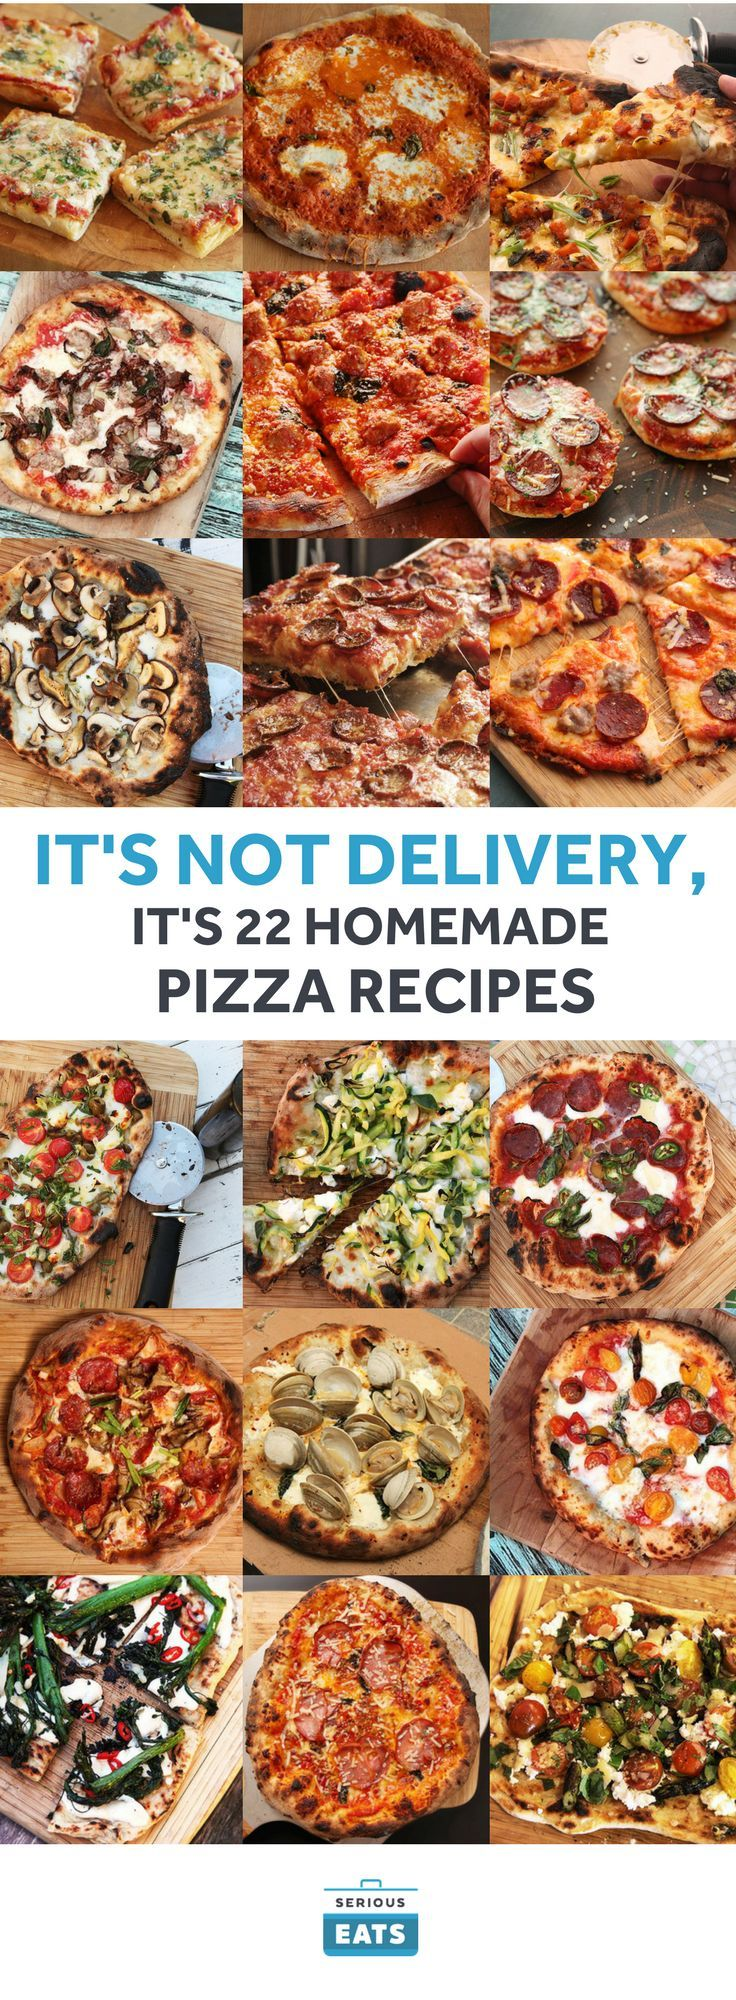 We've got tons of pizza recipes, from New York-style and Neapolitan pies to ... We've got tons